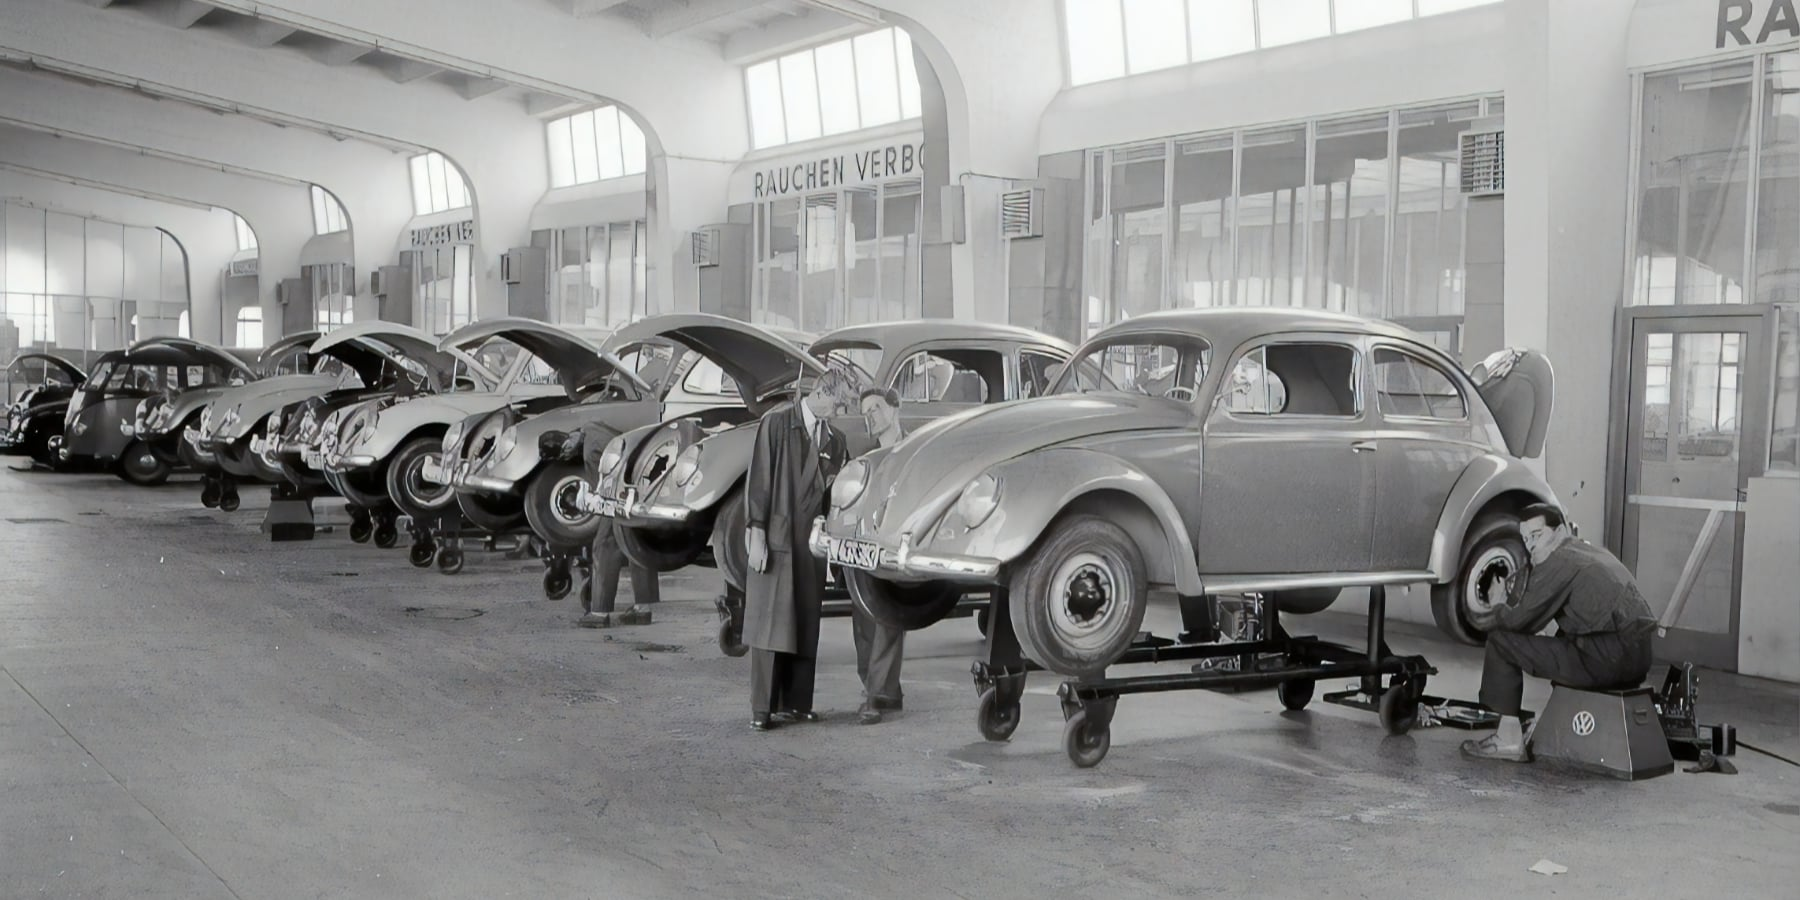 Austrian National Library, VW Beetle manufacturing line, 1957.